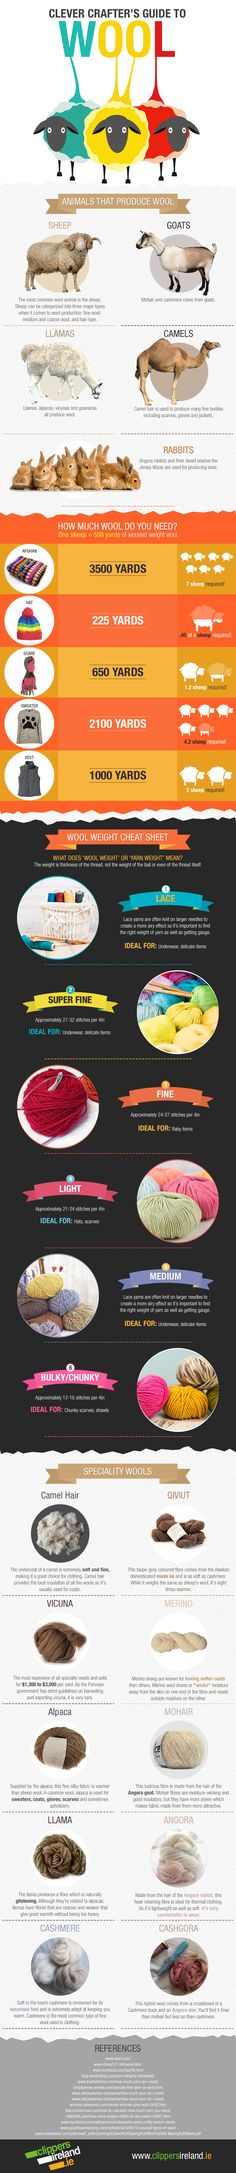 I love wool. Most of the yarn I use is wool yarn… it's delightful to work with and makes my heart happy. Imagine my delight when Tom from Clippers Ireland sent me this delightful infographic all about wool! (and popped FreshStitches into the reference section!) Isn't wool awesome? Thanks so much to Clippers Ireland for …